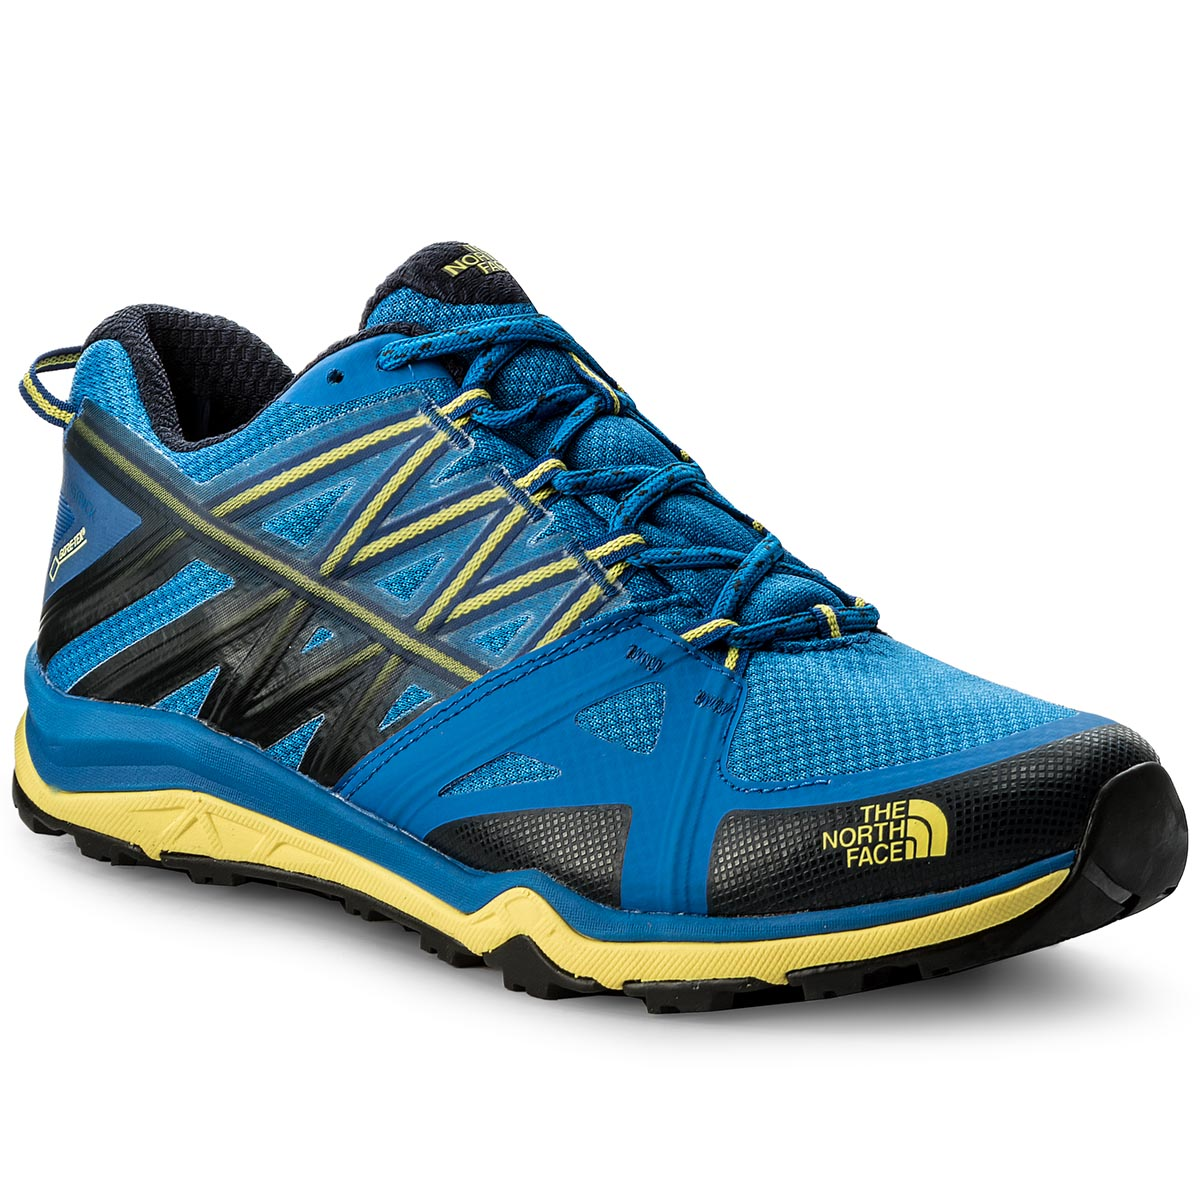 Trekkings THE NORTH FACE - Hedgehog Fastpack Lite II Gtx GORE-TEX T92UX54DB Blue Quartz/Blazing Yellow